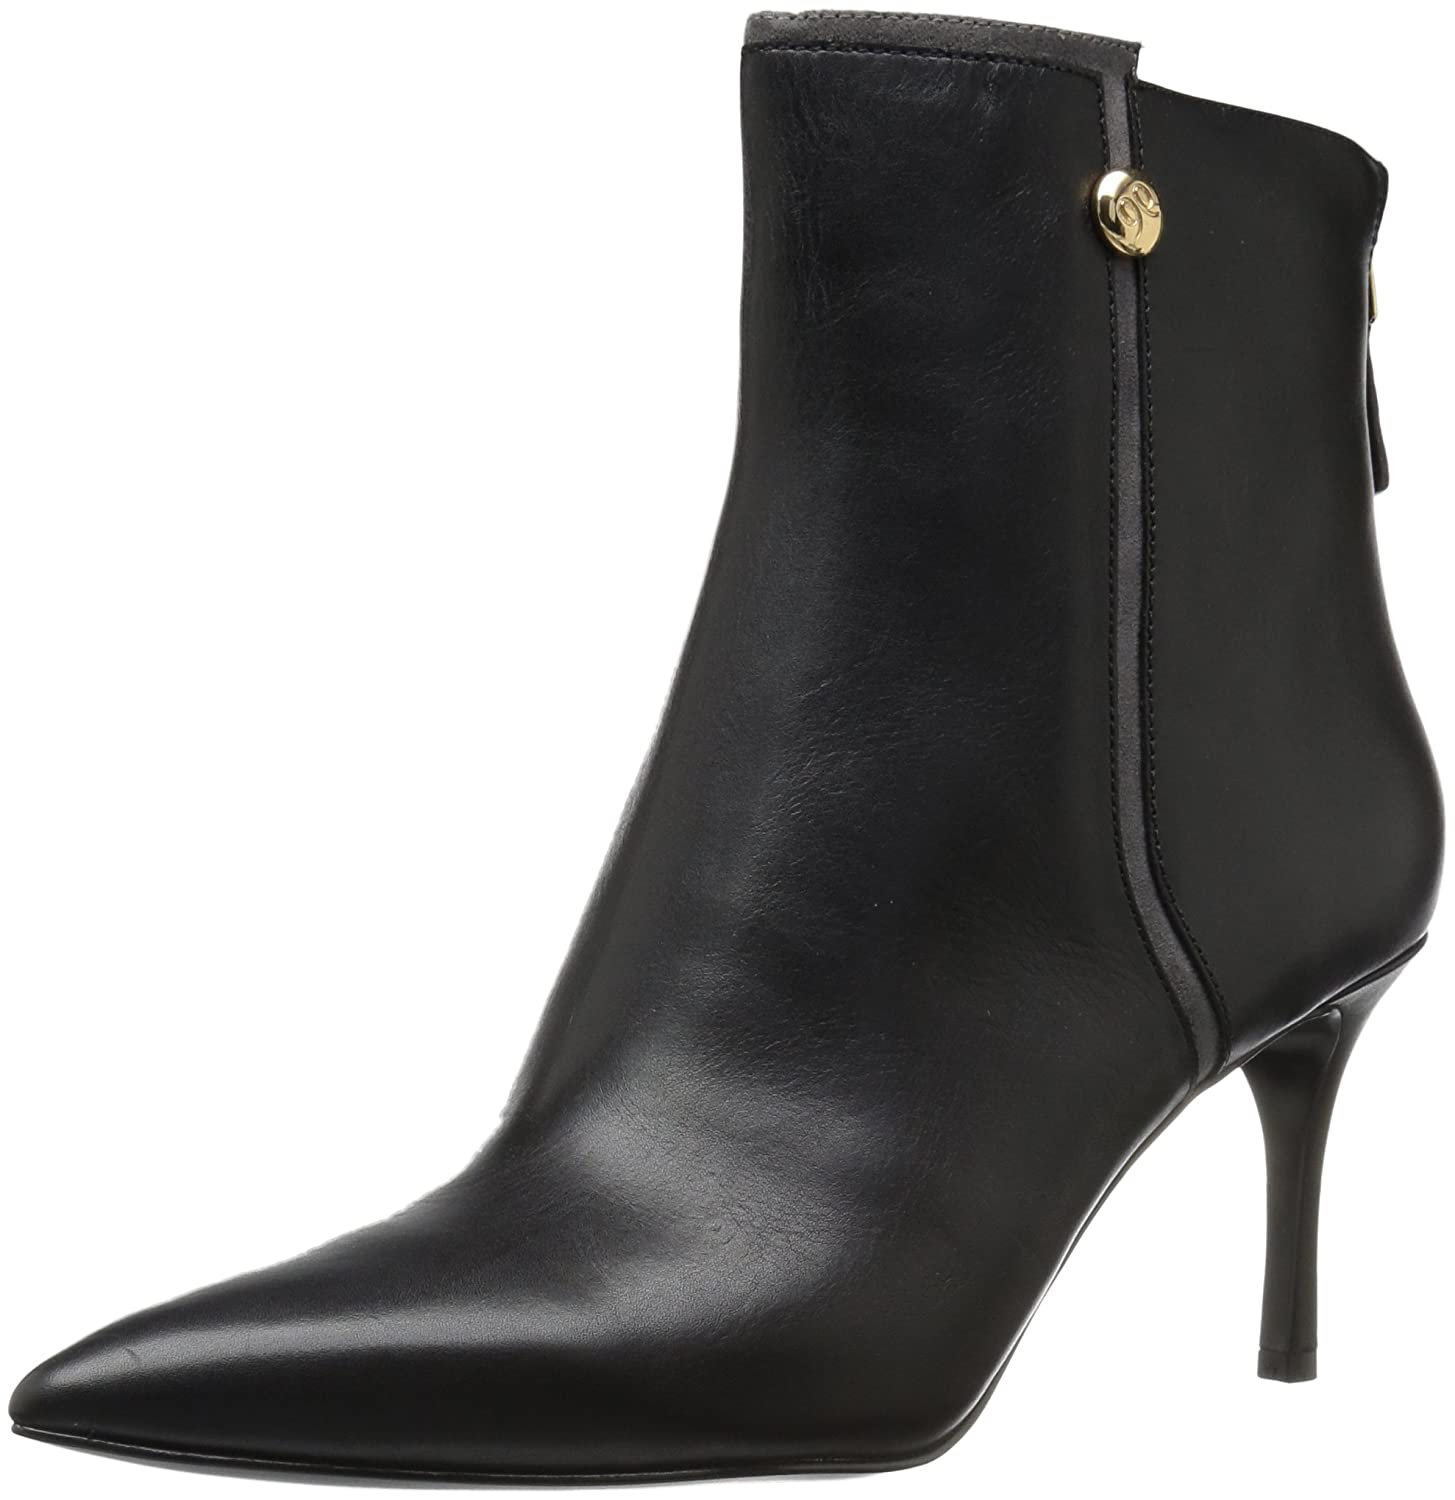 Nine West Women's Monsoon Ankle Boot B01N3CH6U6 6 B(M) US|Black/Dark Grey